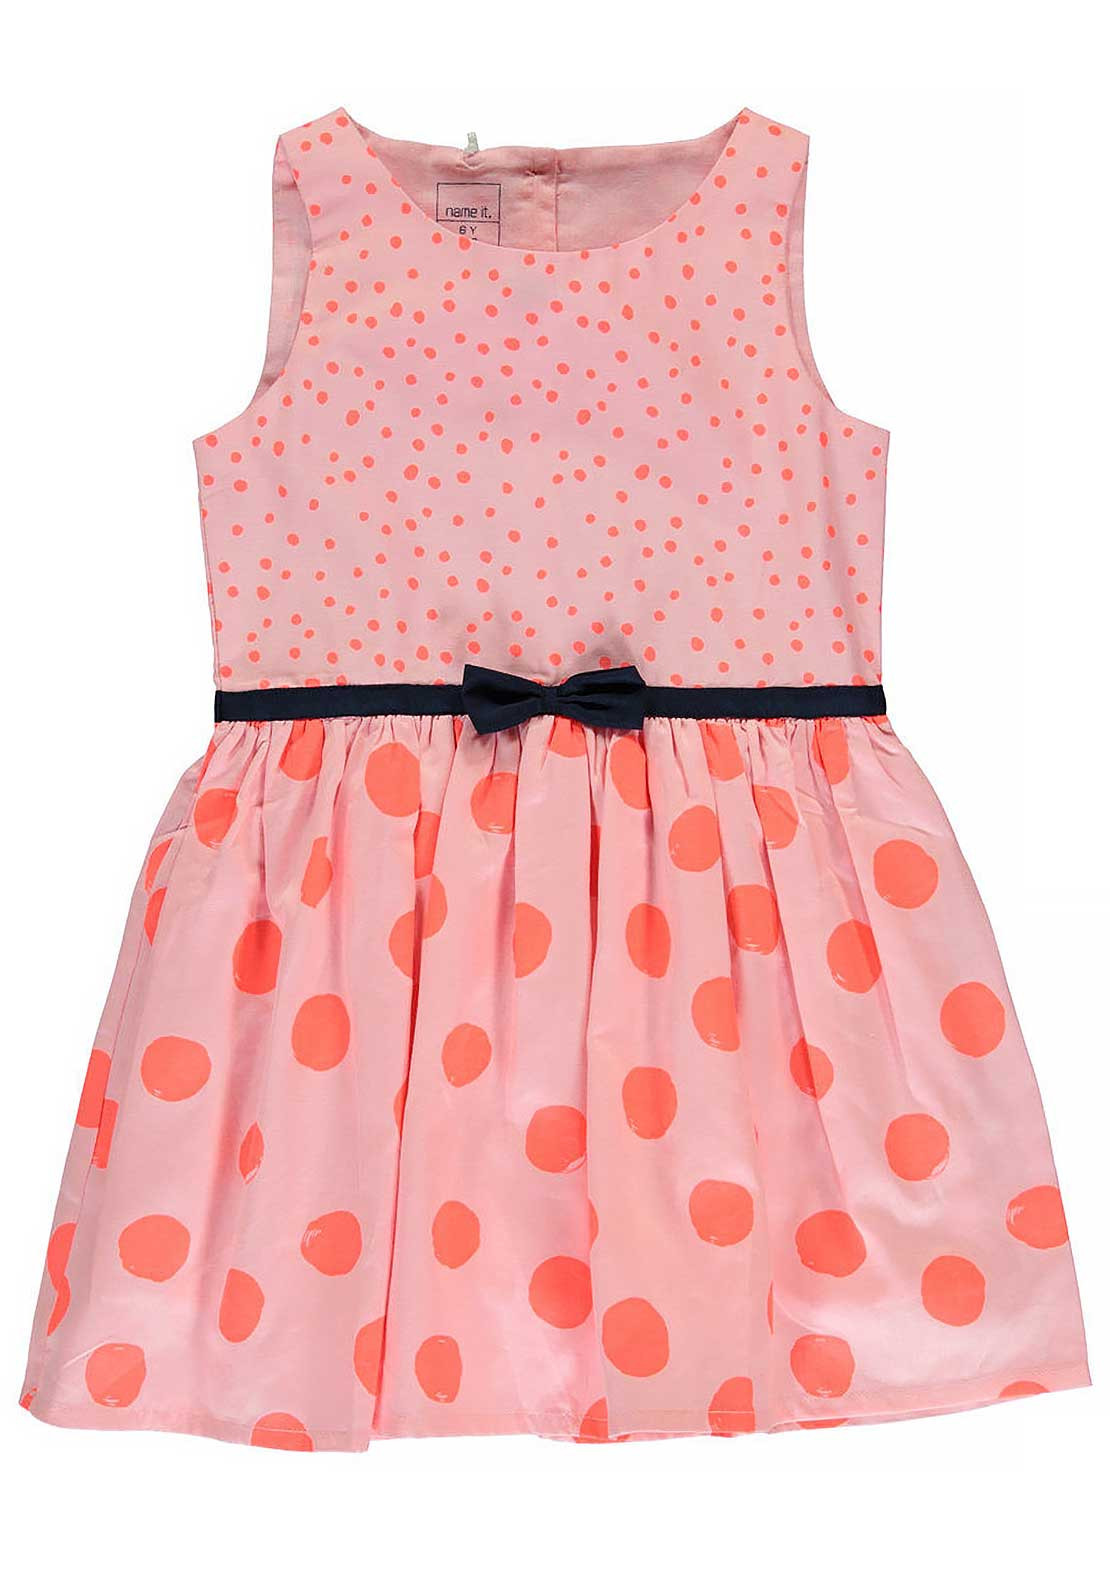 Name It Girls Polka Dot Bow Dress, Almond Blossom